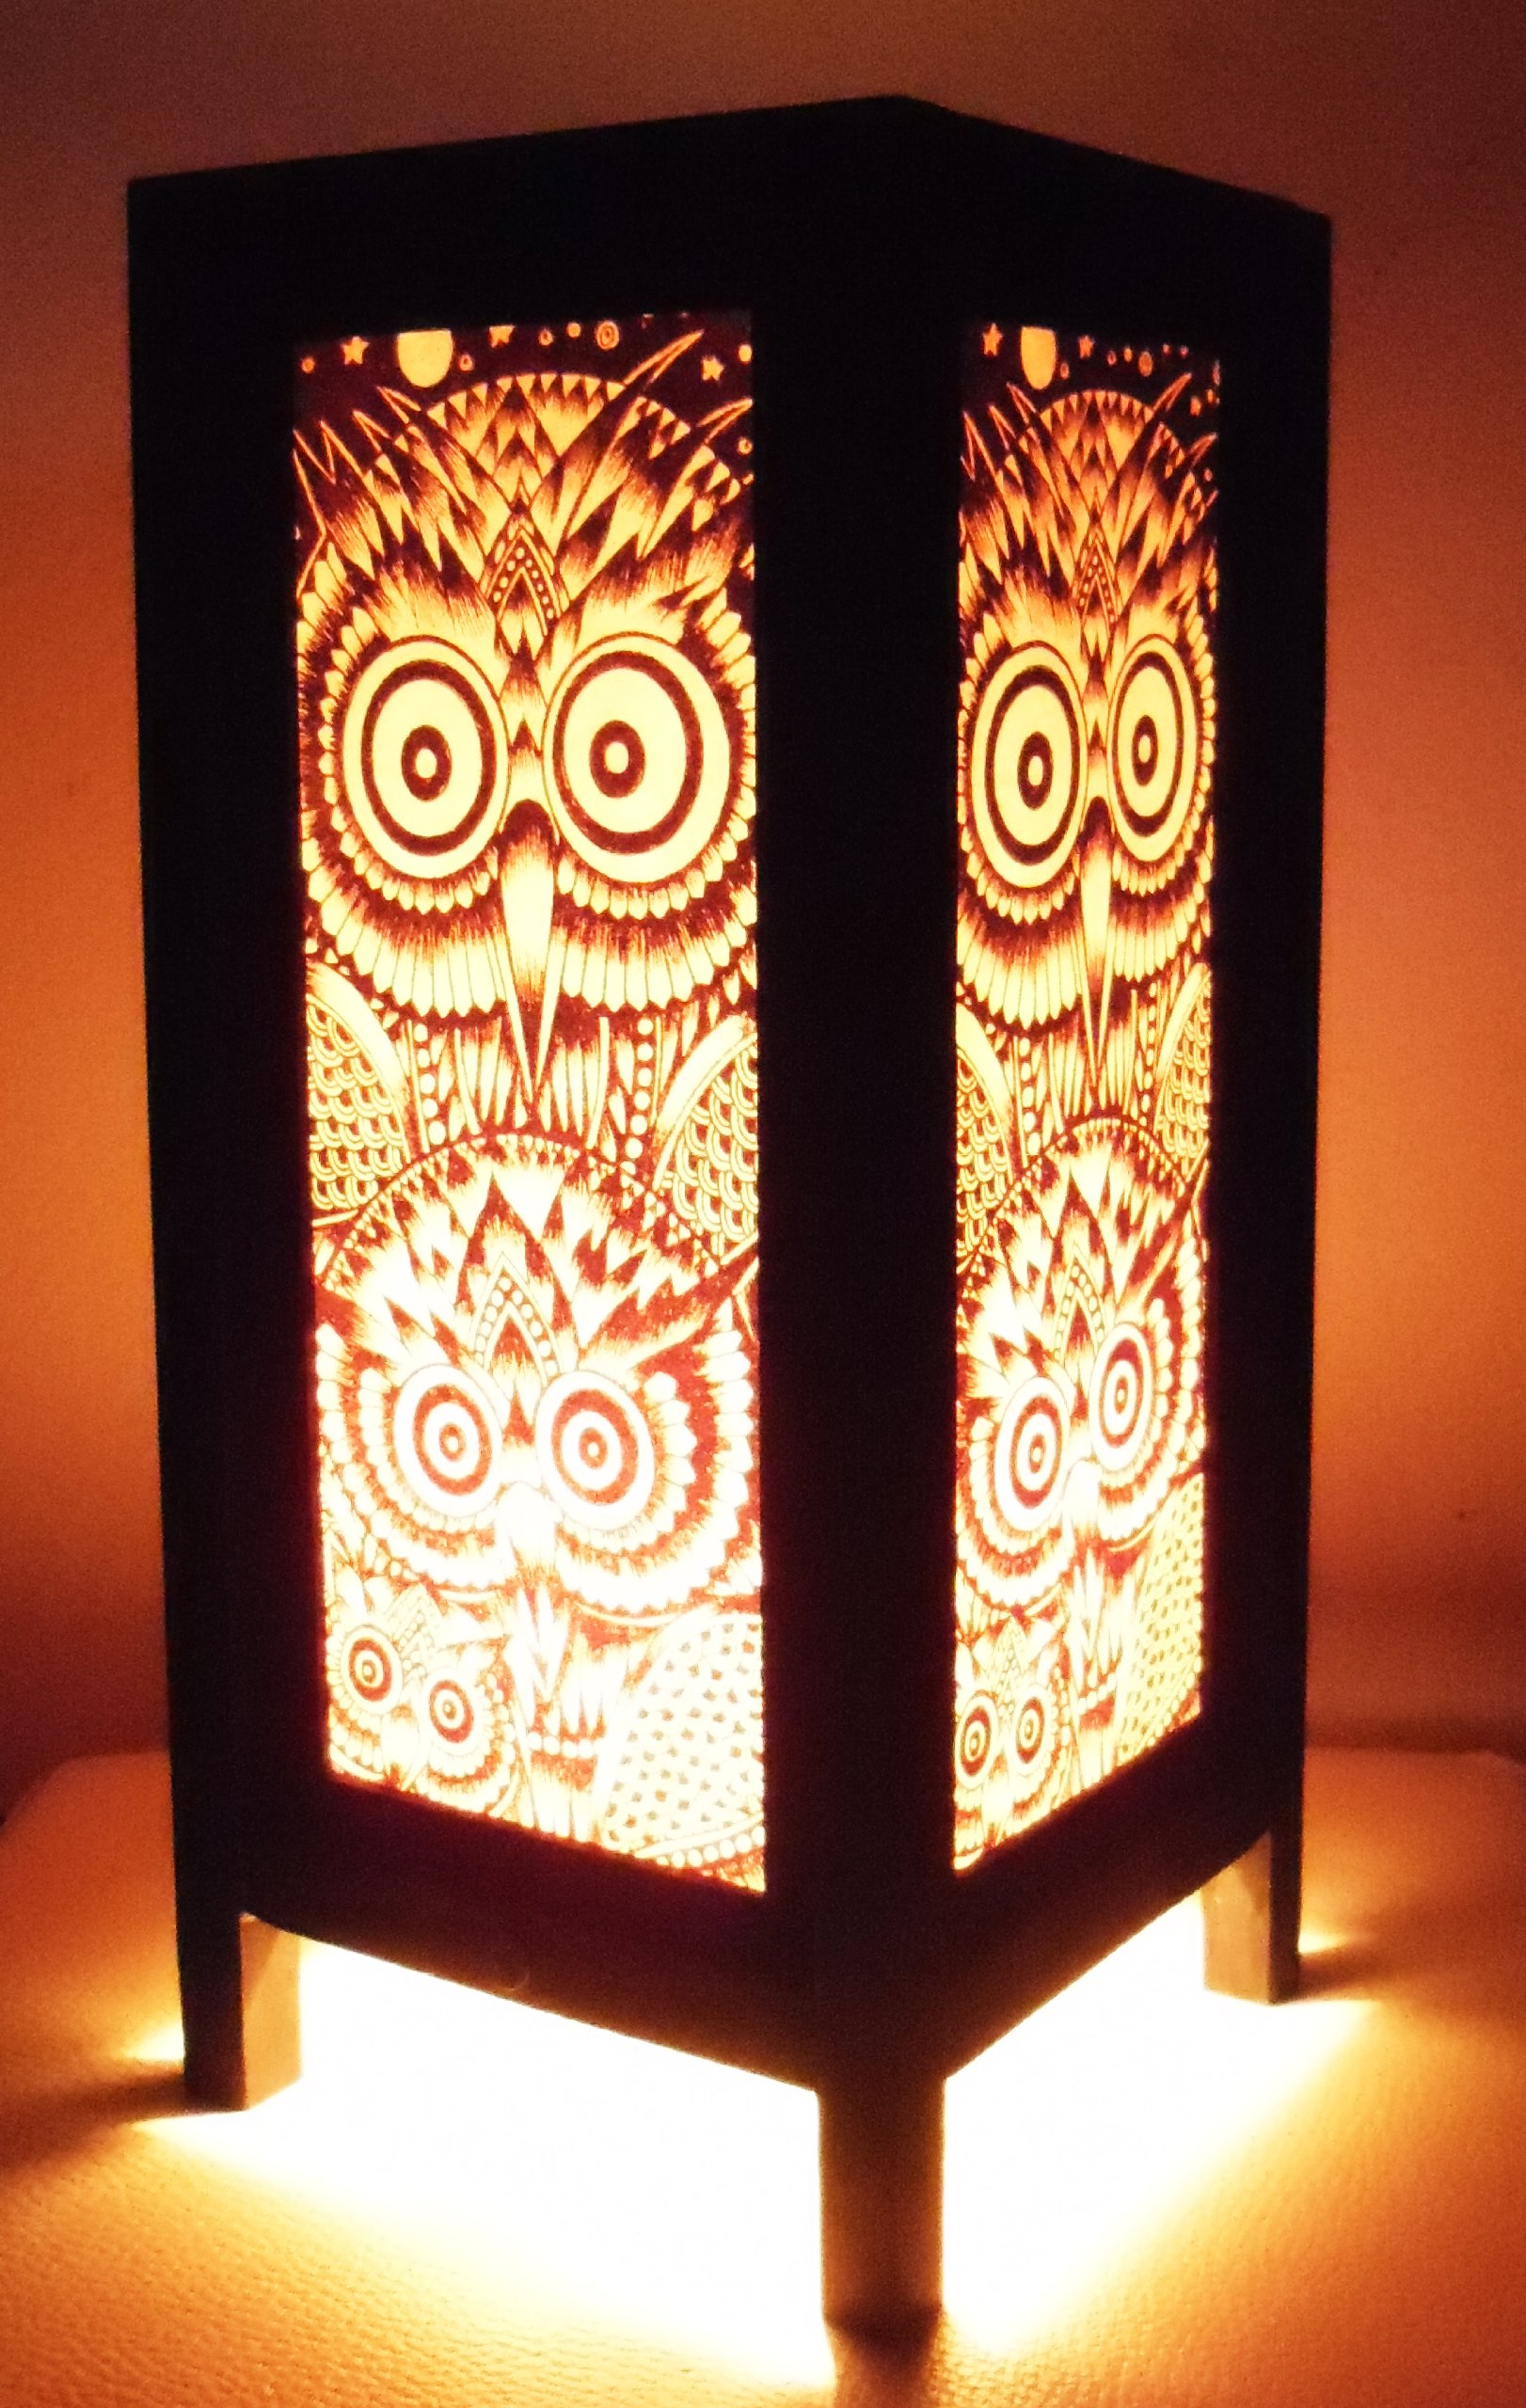 Thai Vintage Handmade Asian Oriental Night Owl Bedside Table Light or Floor Wood Paper Lamp Shades Home Bedroom Garden Decor Modern Design from Thailand by Red berry Thailand Lanna Lamp